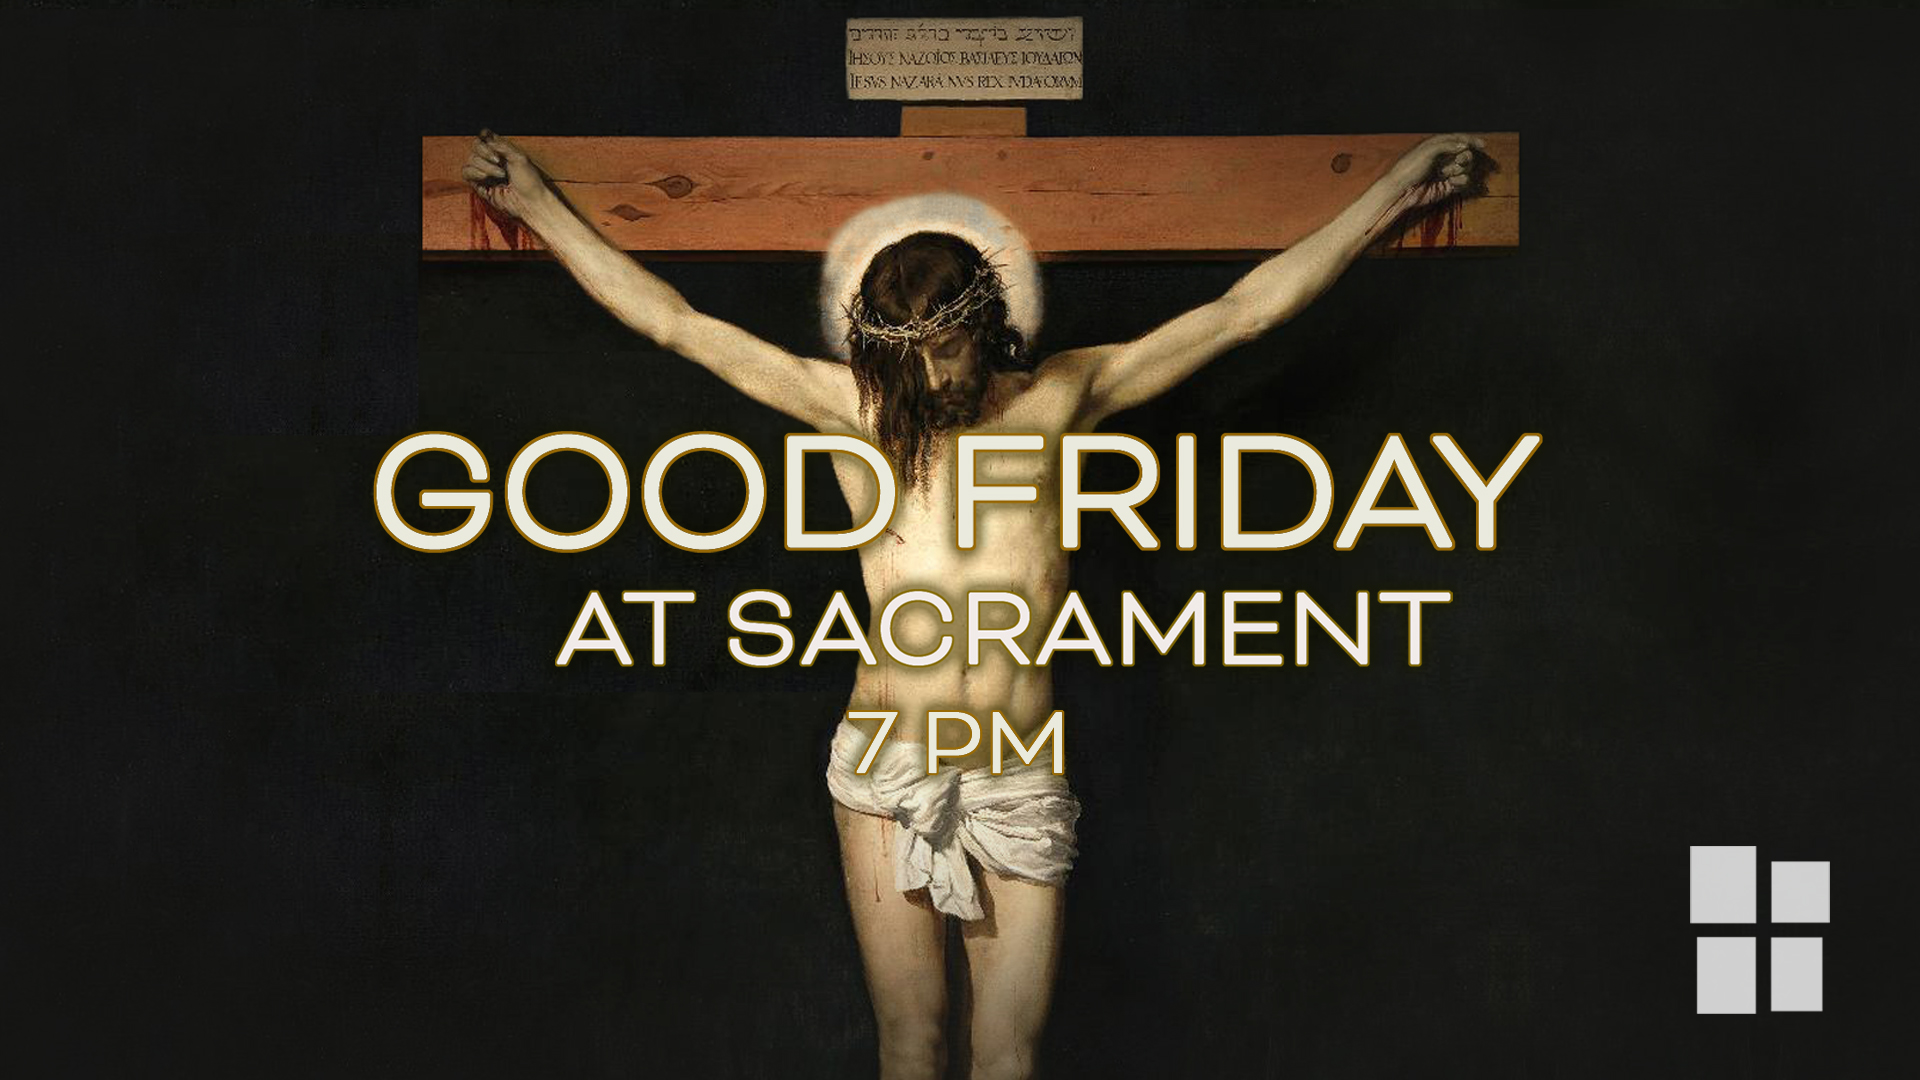 sacrament_good_friday_wide.JPG